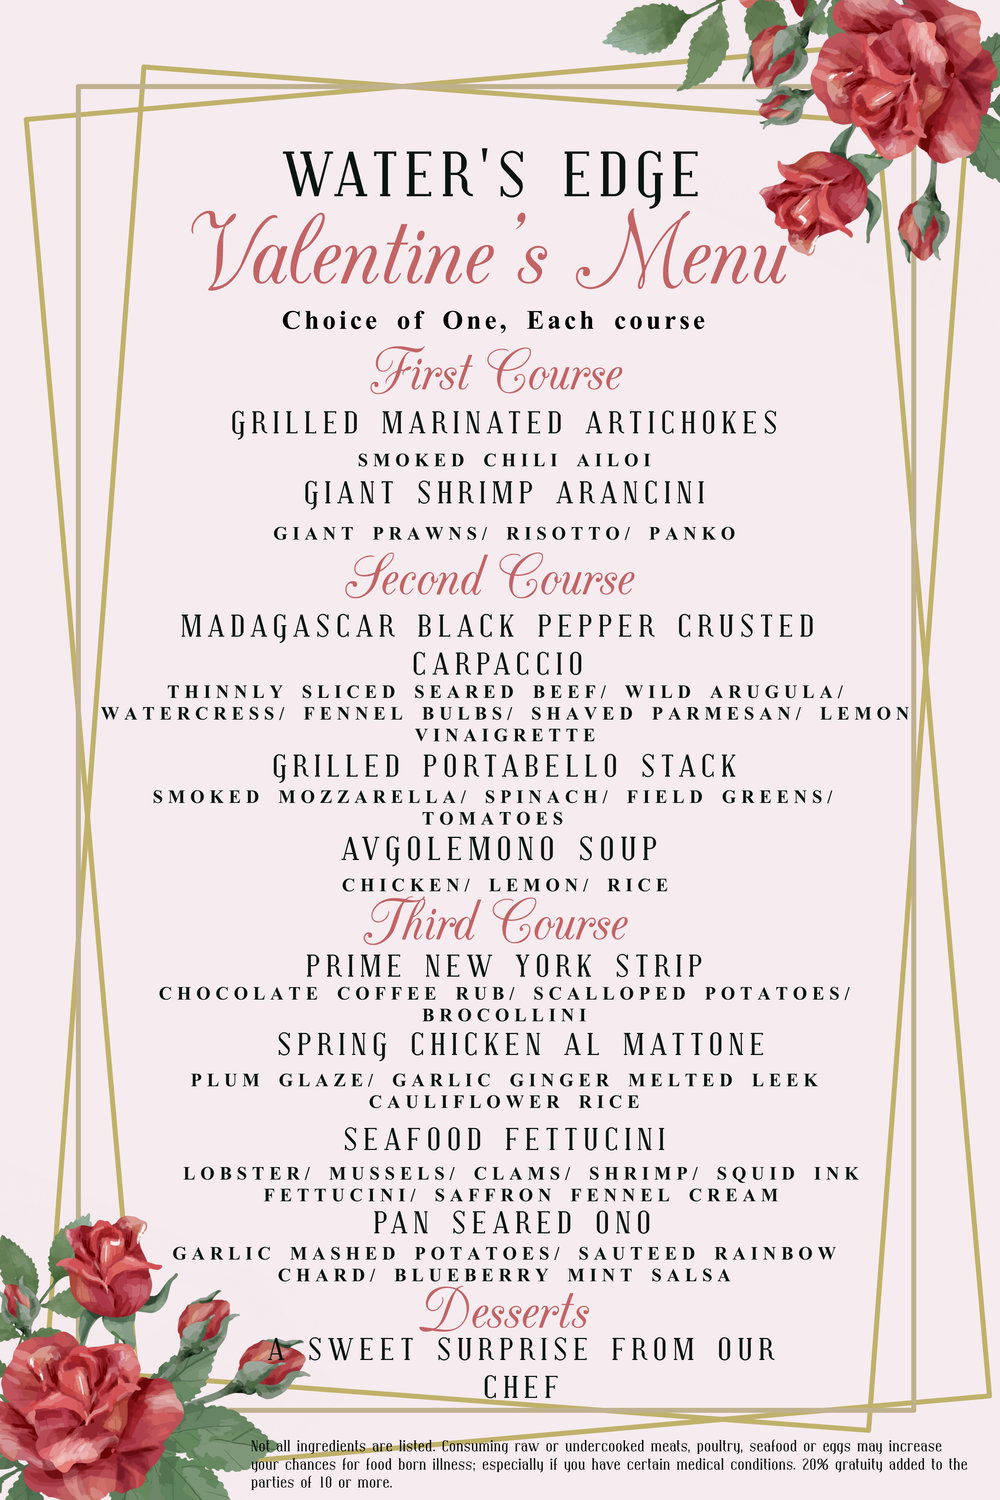 Valentines Menu WE Final Copy-3.jpg